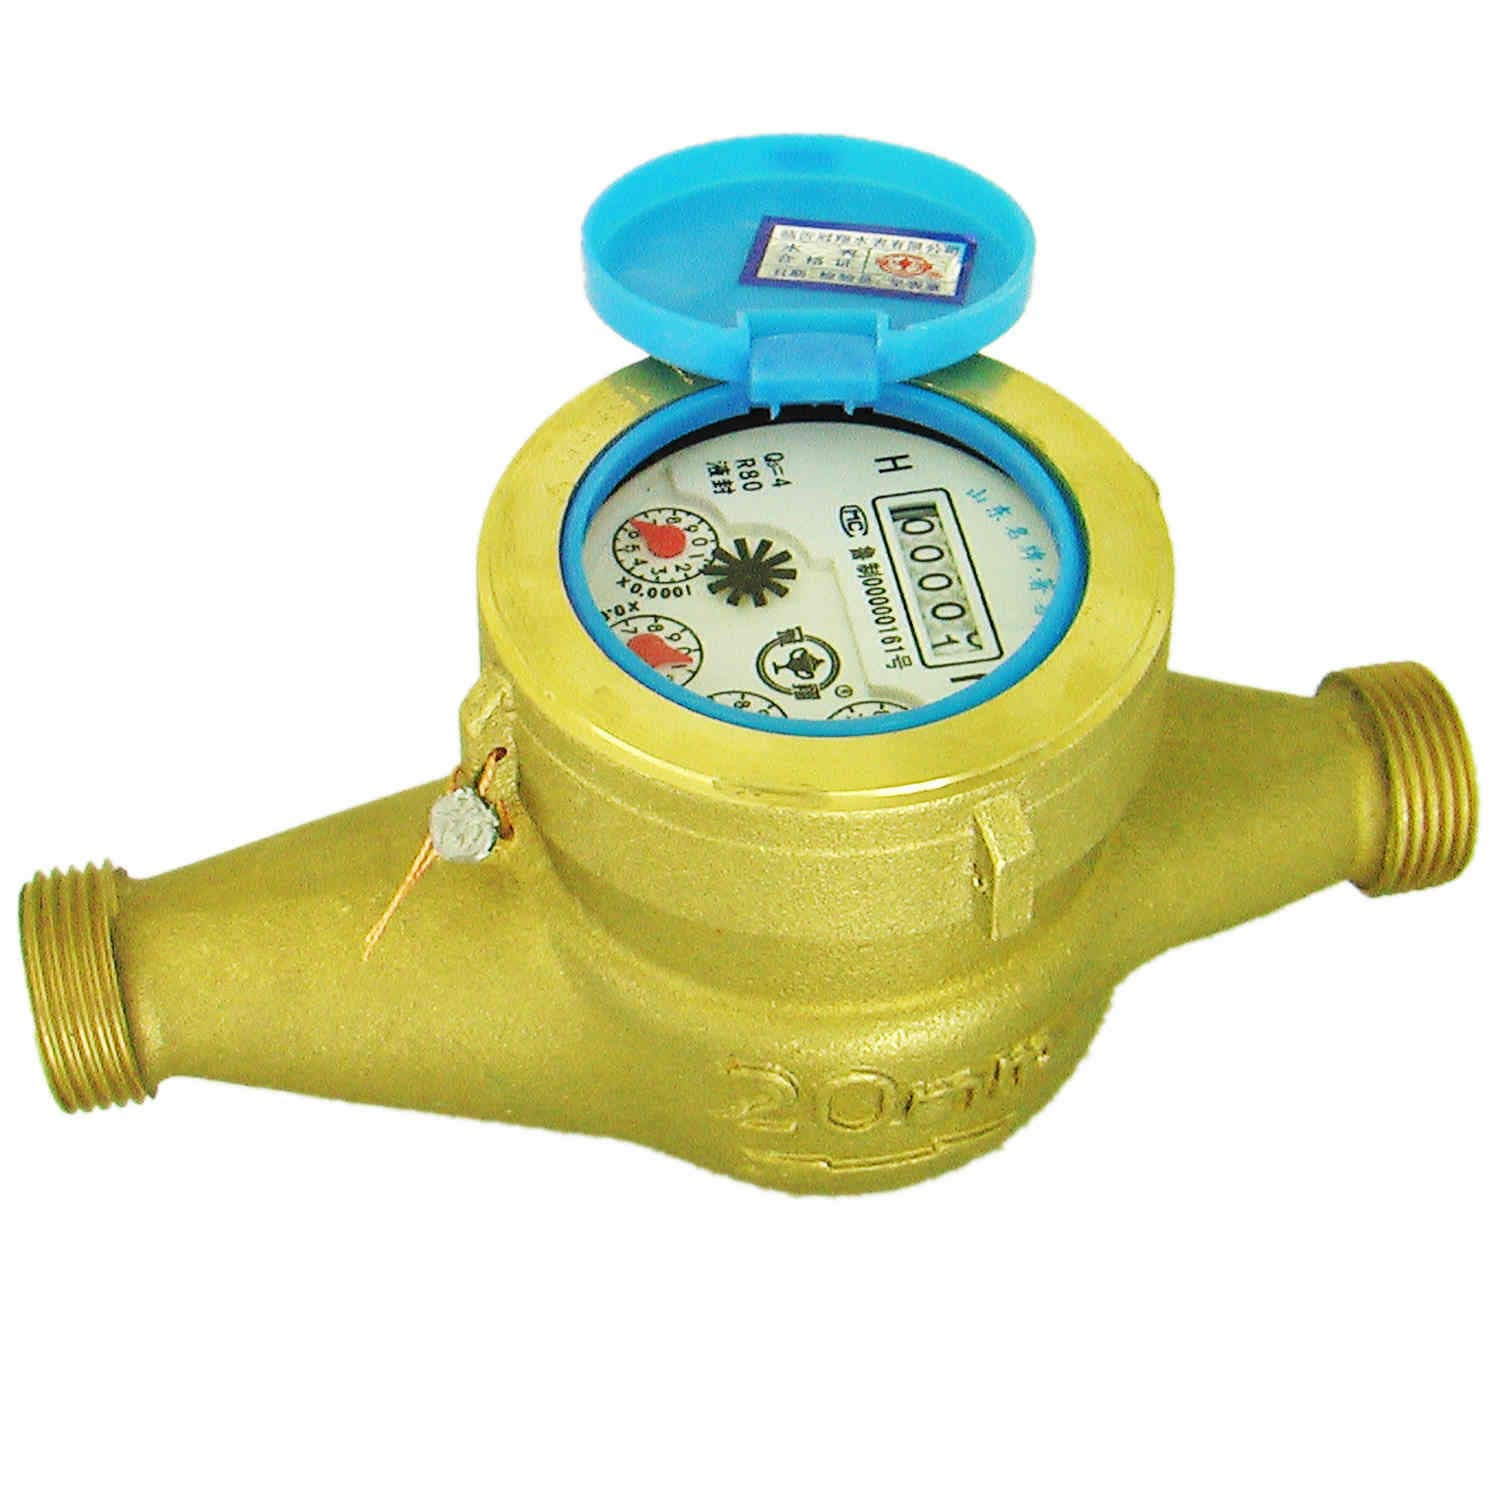 House Water Meter : Brass water meter from shandong guanxiang co ltd